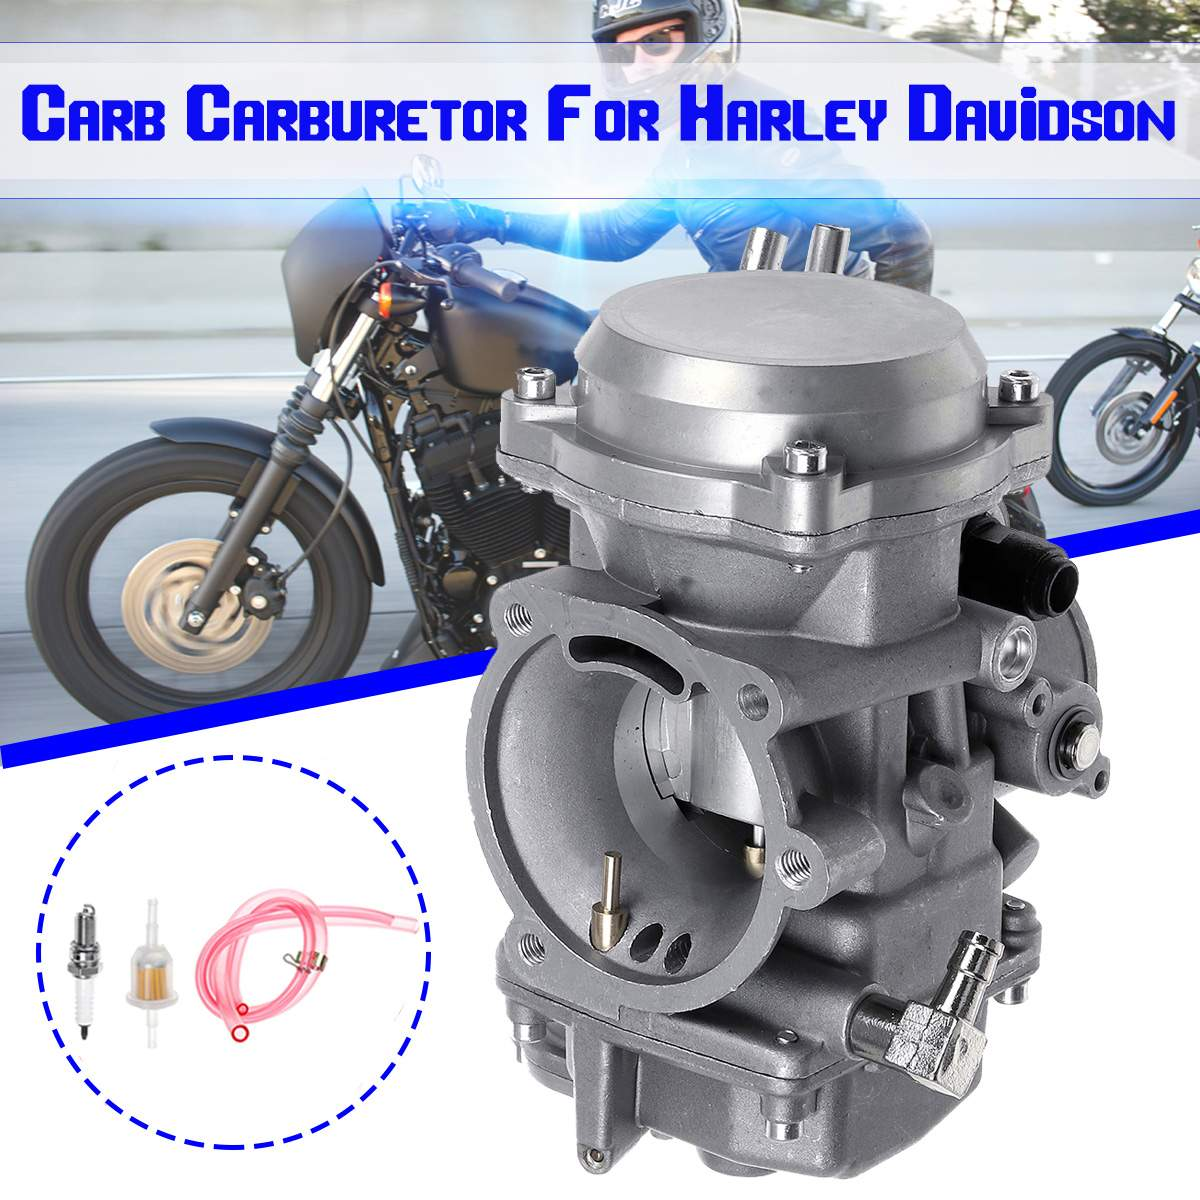 40mm Motorcycle Carb Carburetor 27421-99C 27490-04 27465-04 27031-95 For Harley Davidson/Softail/Dyna FXR Touring/Sportster